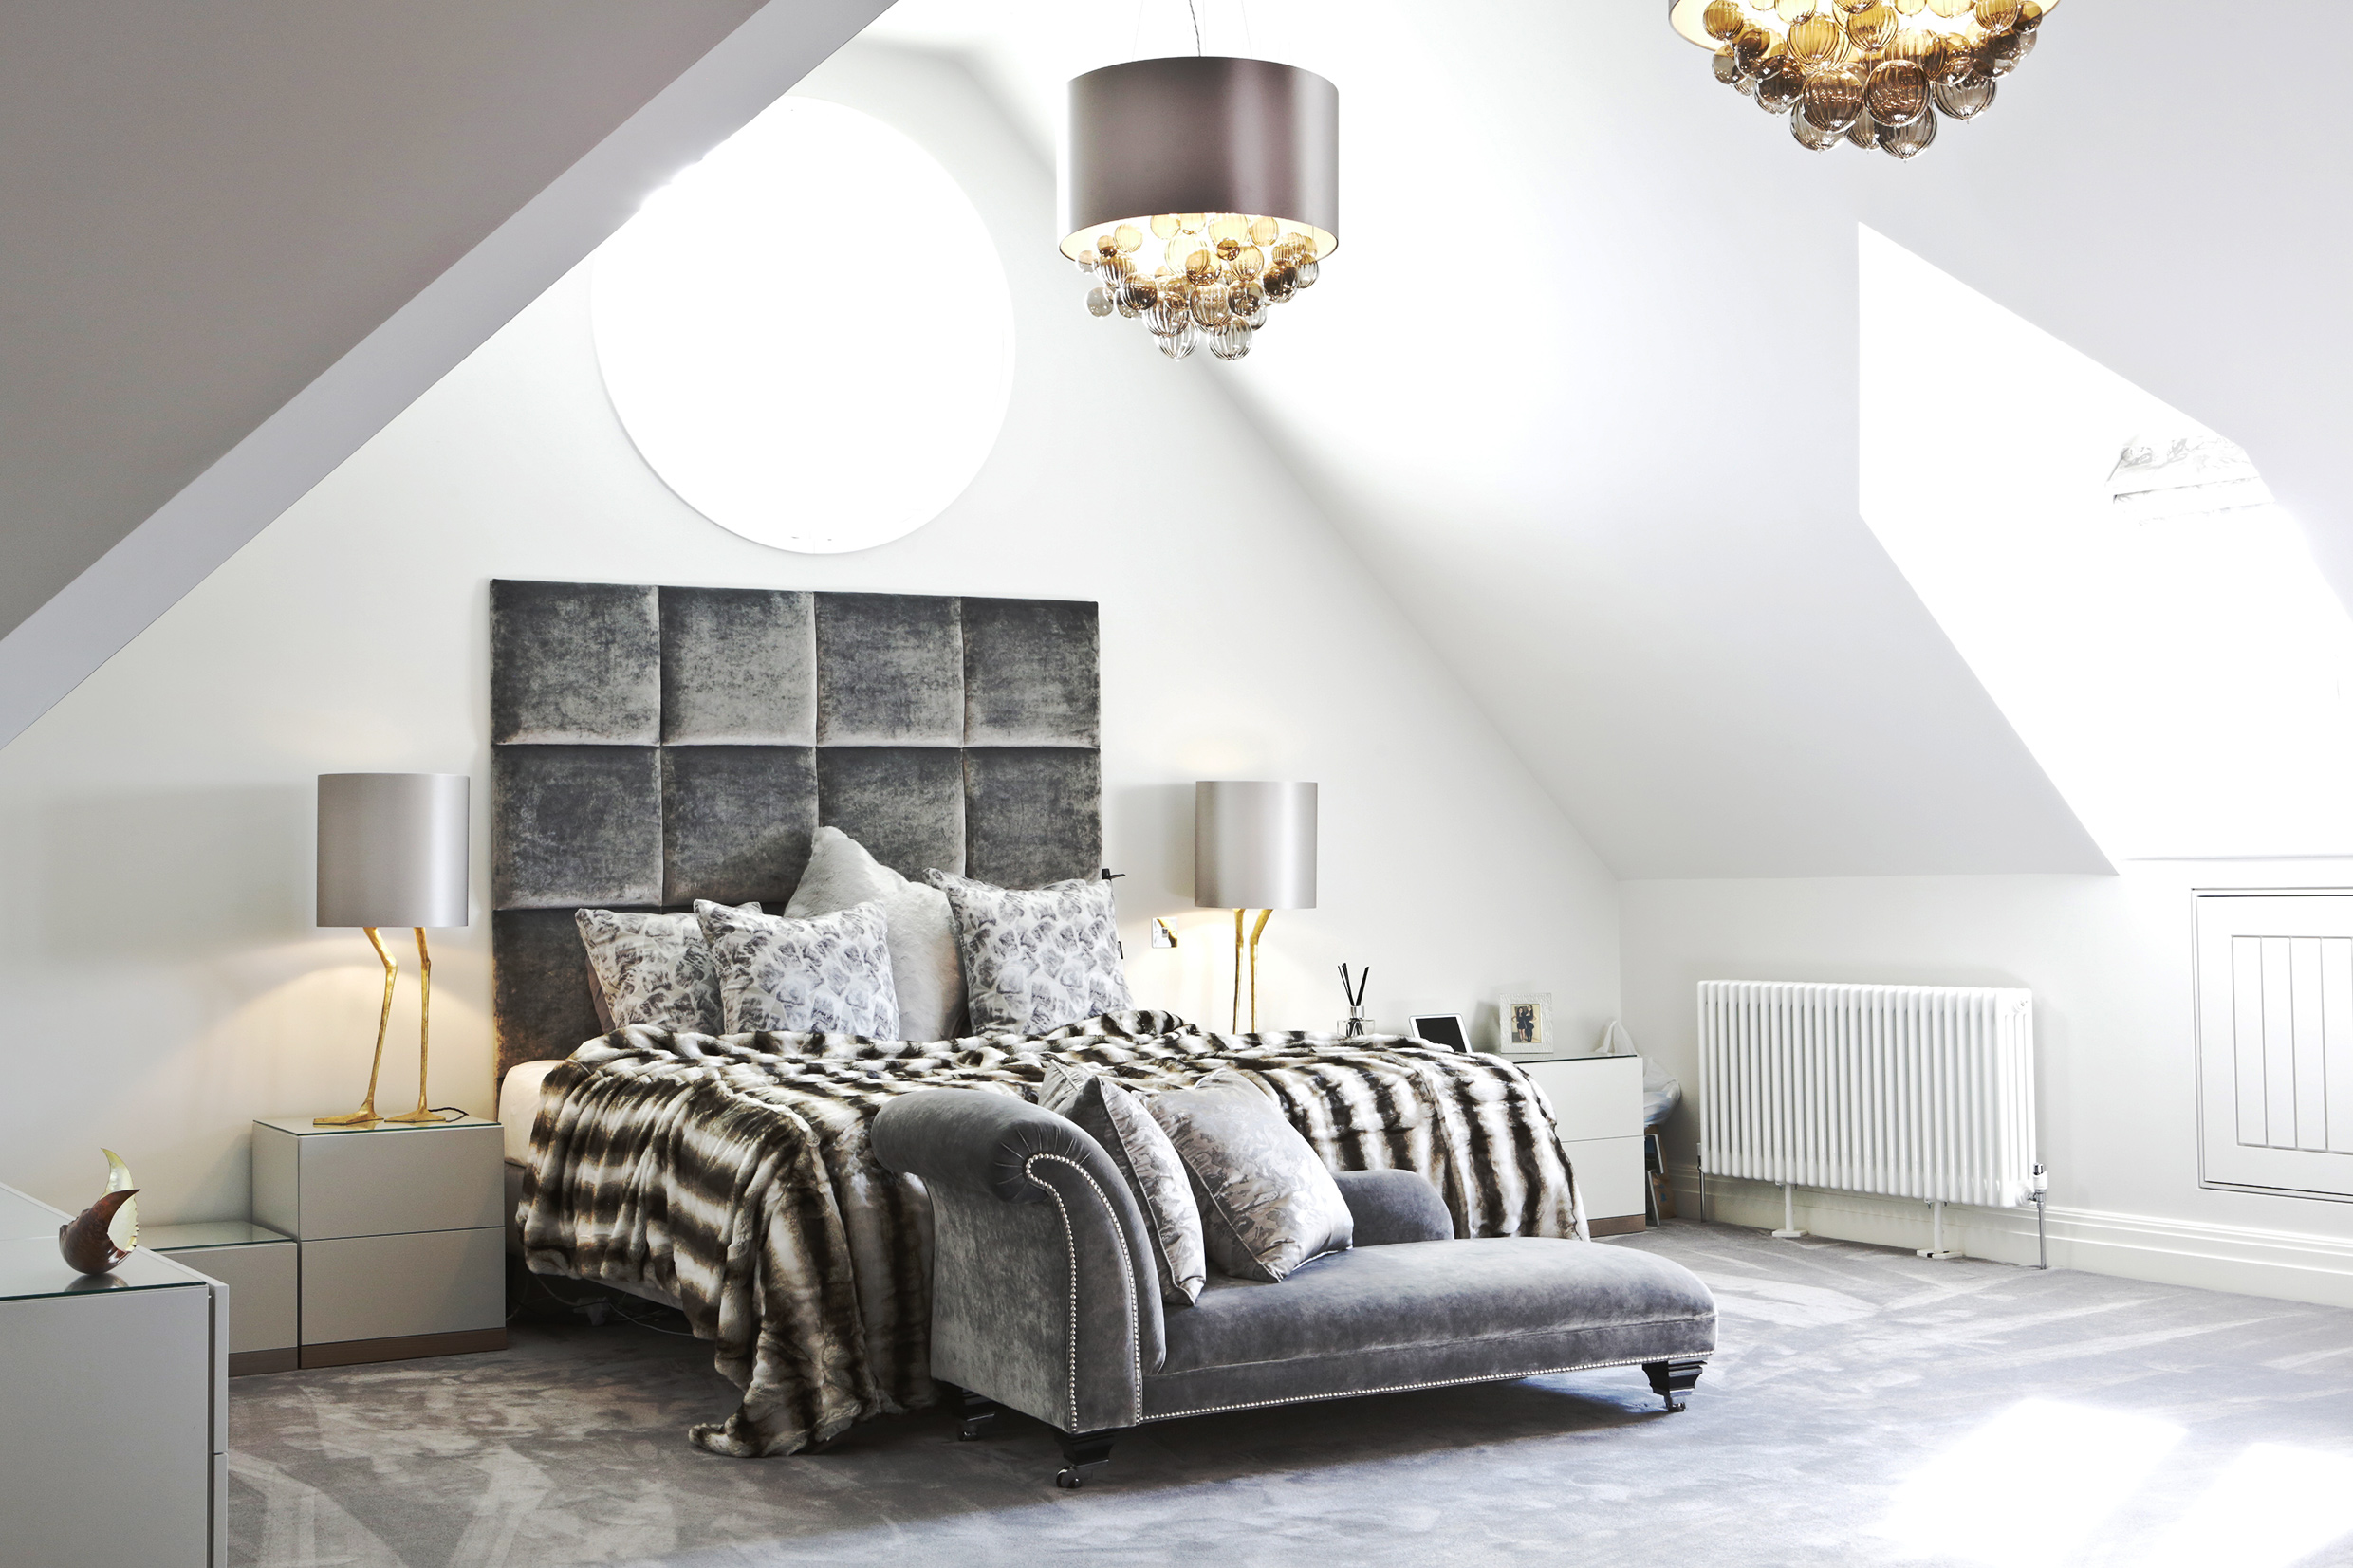 Peter Staunton Interior Design Flint Hall L Bedroom Leamington Spa Warwickshire